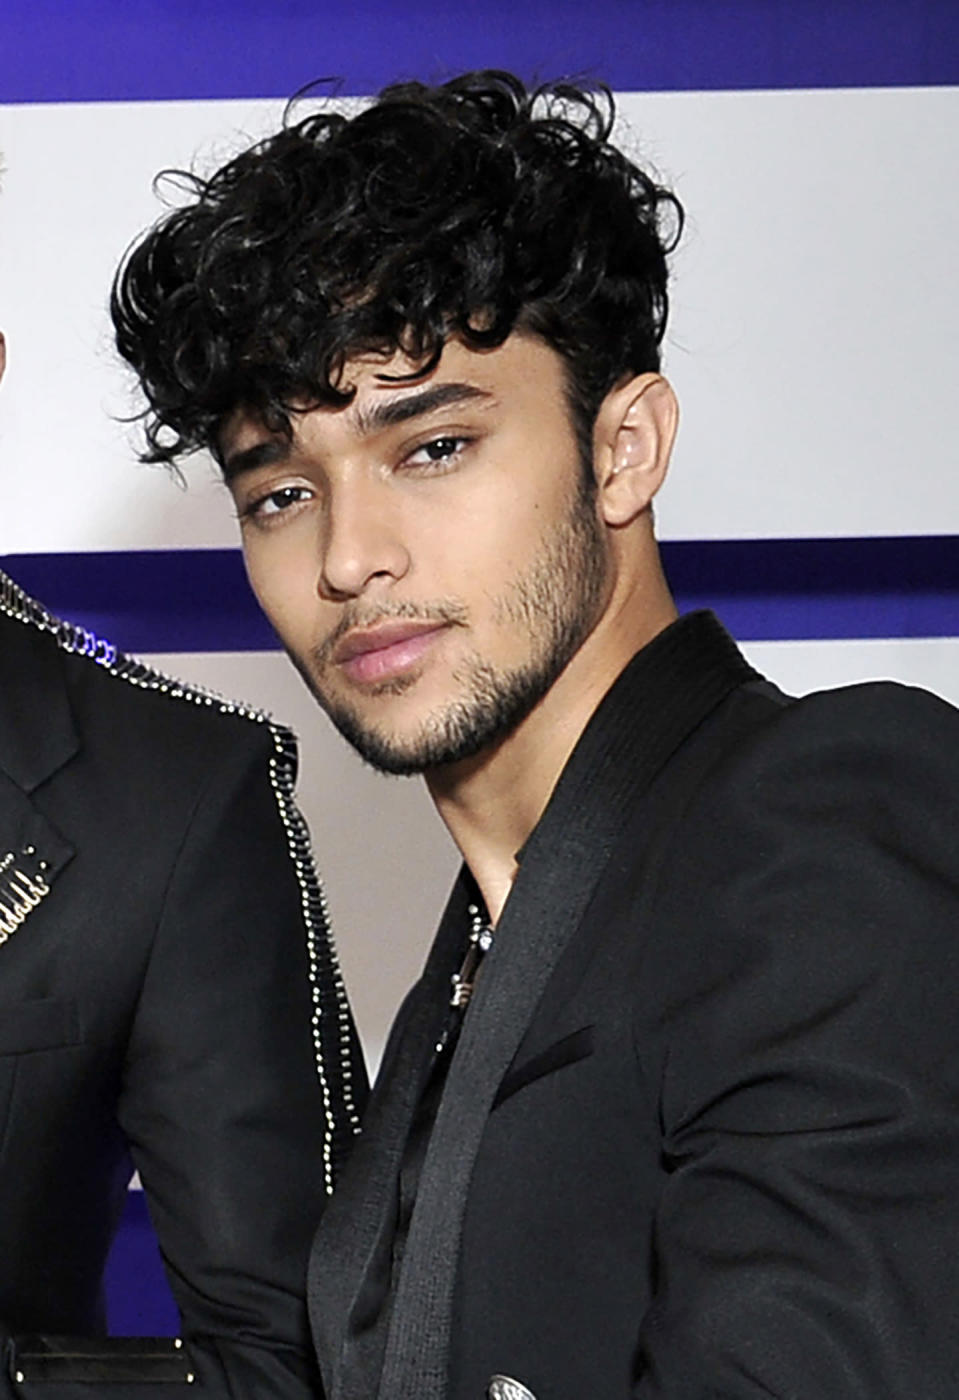 File - This Oct. 17, 2019, file photo shows Joel Pimentel, of CNCO, posing backstage at the Latin American Music Awards in Los Angeles. The Latin American boy band CNCO is downsizing. The group announced on its official Instagram page Sunday, May 9, 2021, that 22-year-old Pimentel is leaving the band, making the successful quintet a quartet. (Photo by Richard Shotwell/Invision/AP, File)